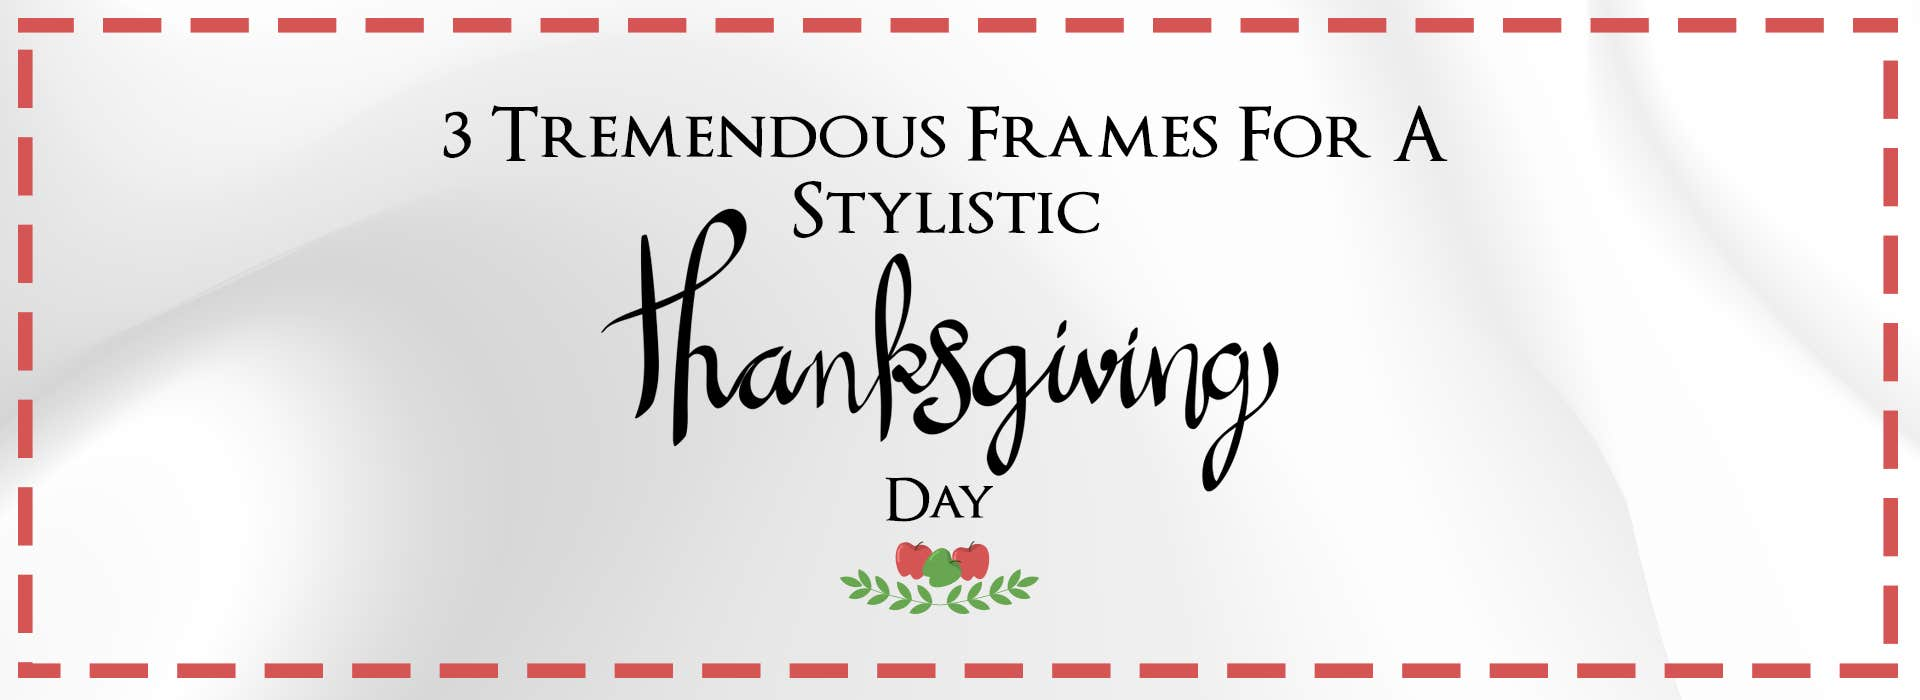 3 Tremendous Frames For A Stylistic Thanksgiving Day